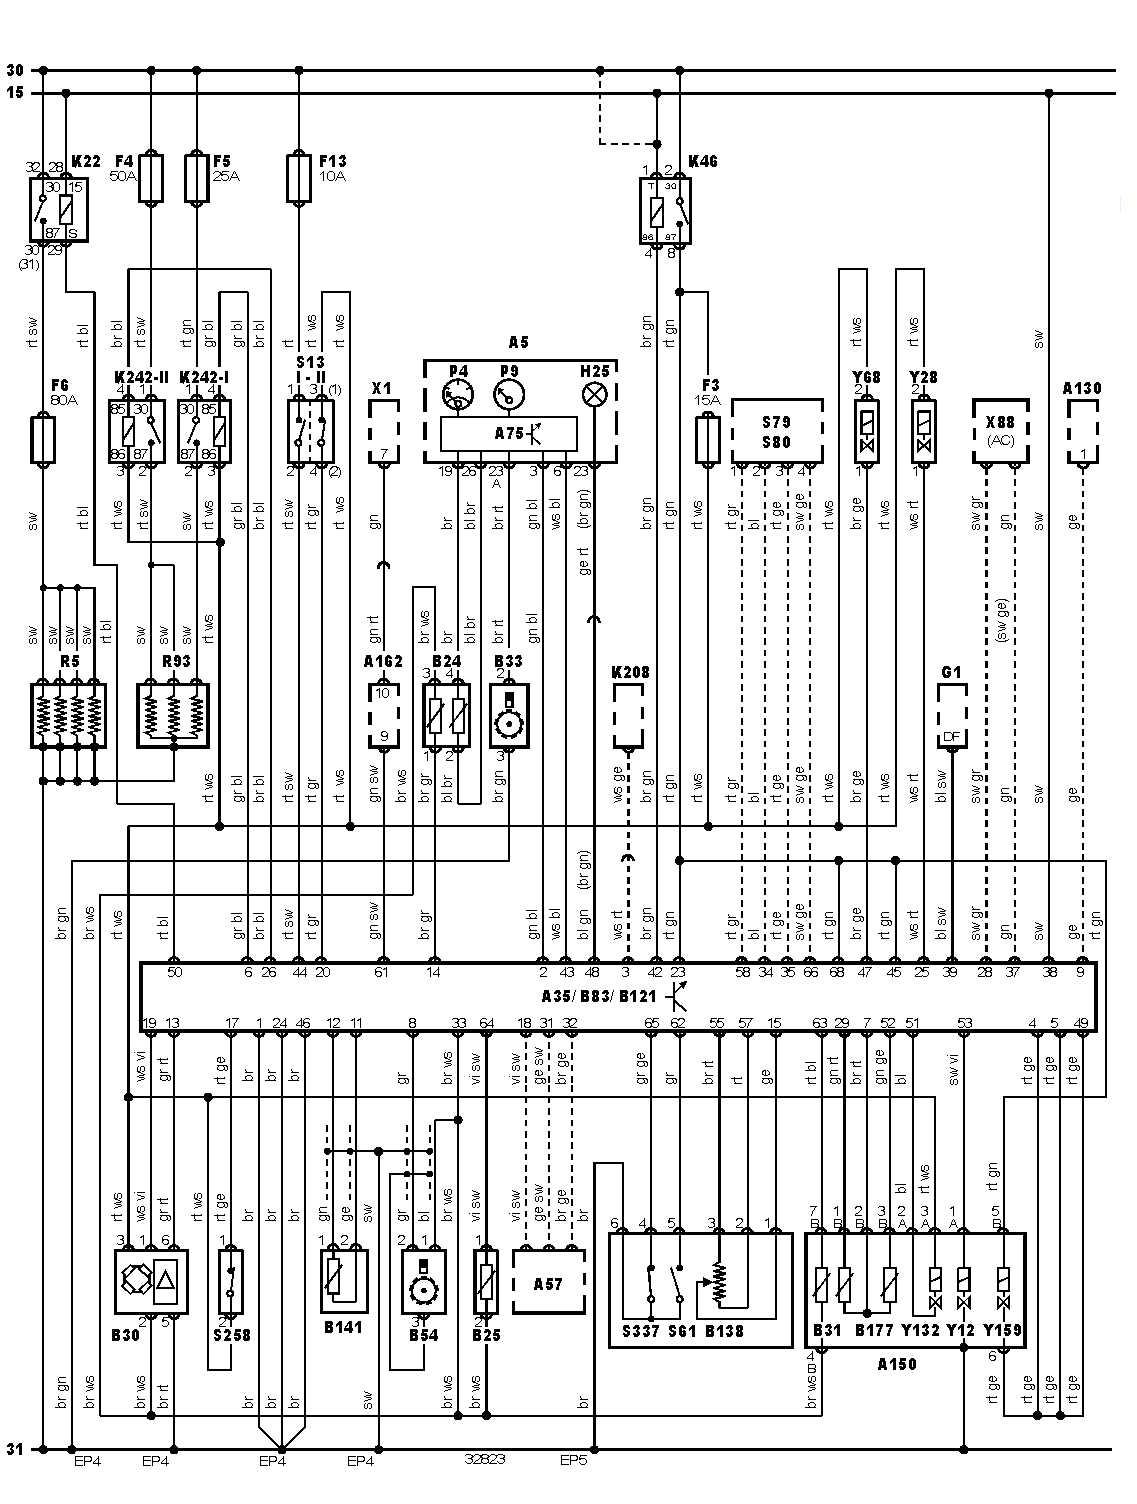 2000 Toyota Land Cruiser Prado Electrical Wiring Diagram besides Corvette Horn Relay Location moreover Showthread likewise 1997 Honda Civic Cooling Fan Wiring Circuit Diagram together with 6aqoe Gm Deville Schematic Vacumn Hoses. on vw beetle headlight fuse